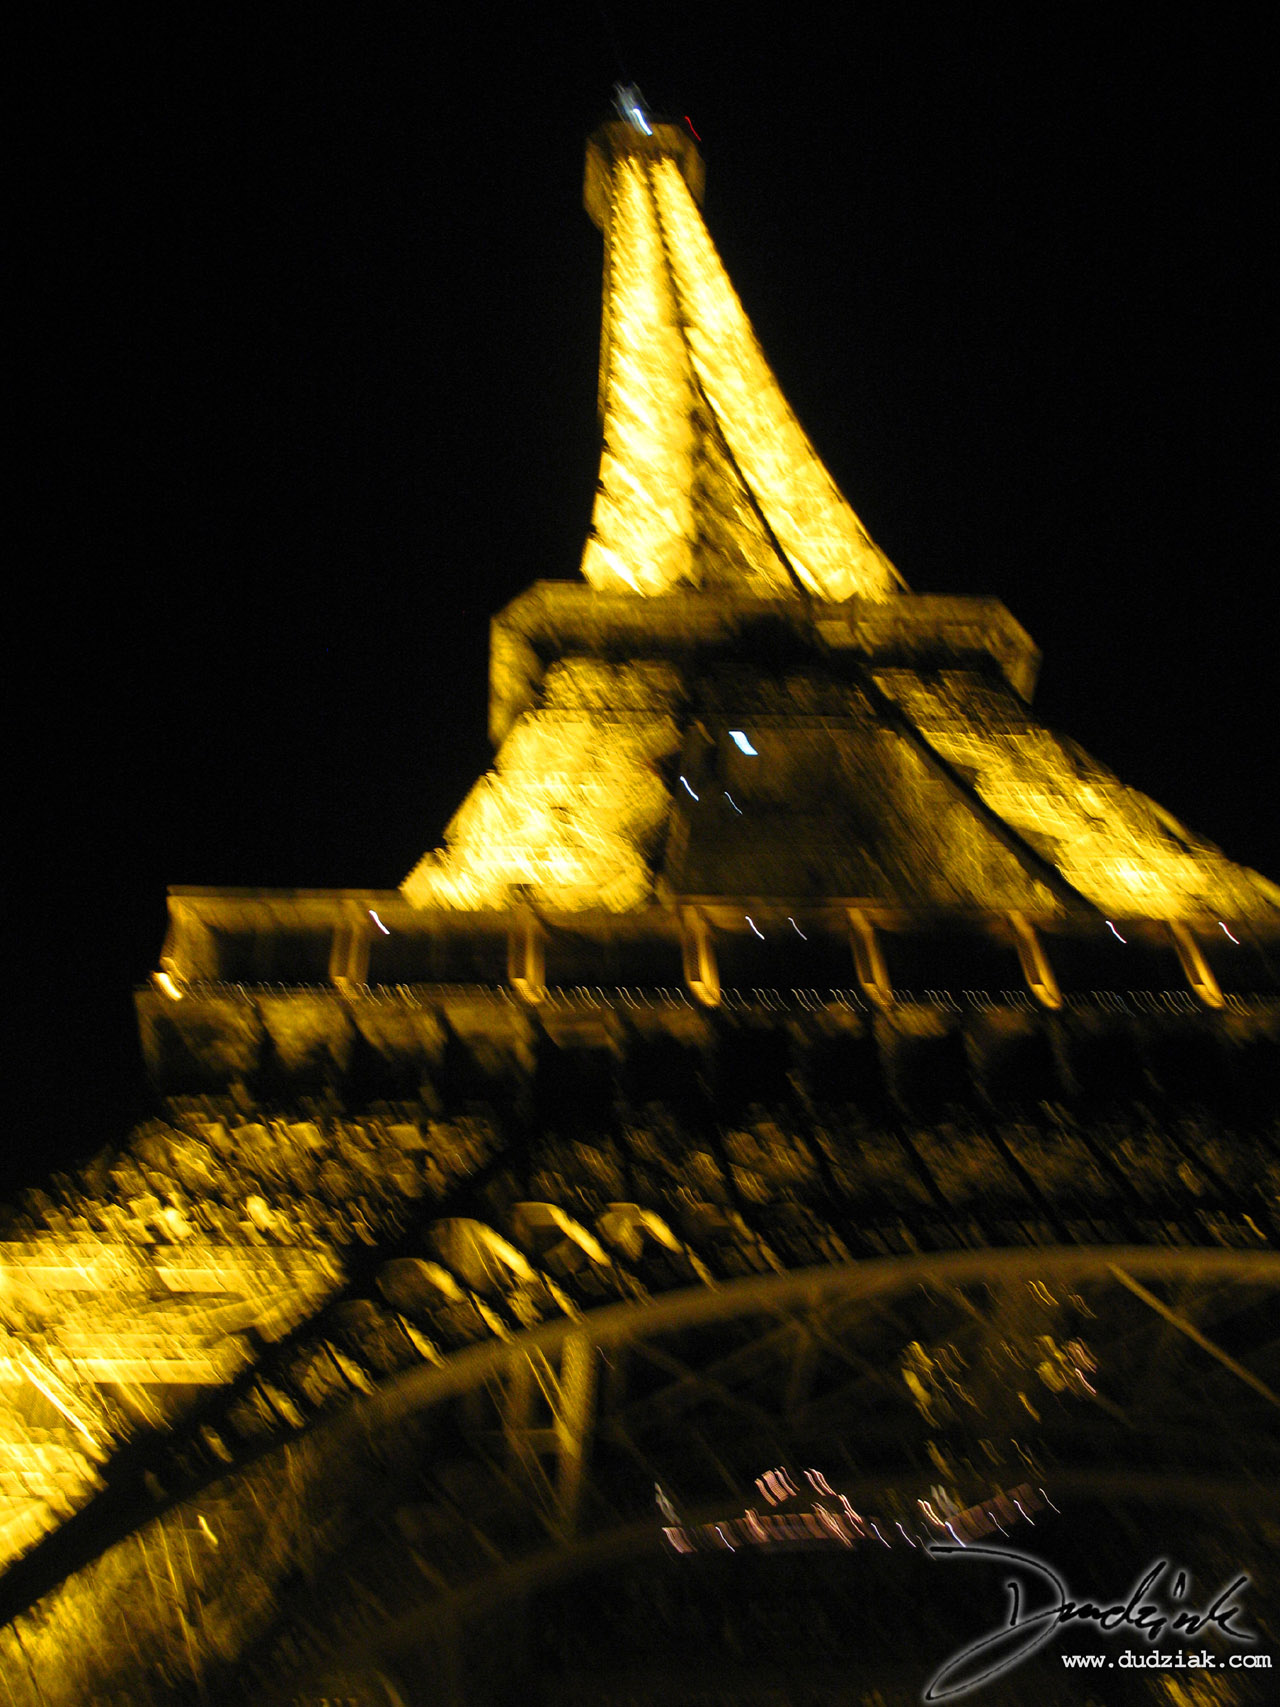 Paris France,  Bastille Day,  Blurry,  Eiffel Tower,  Night